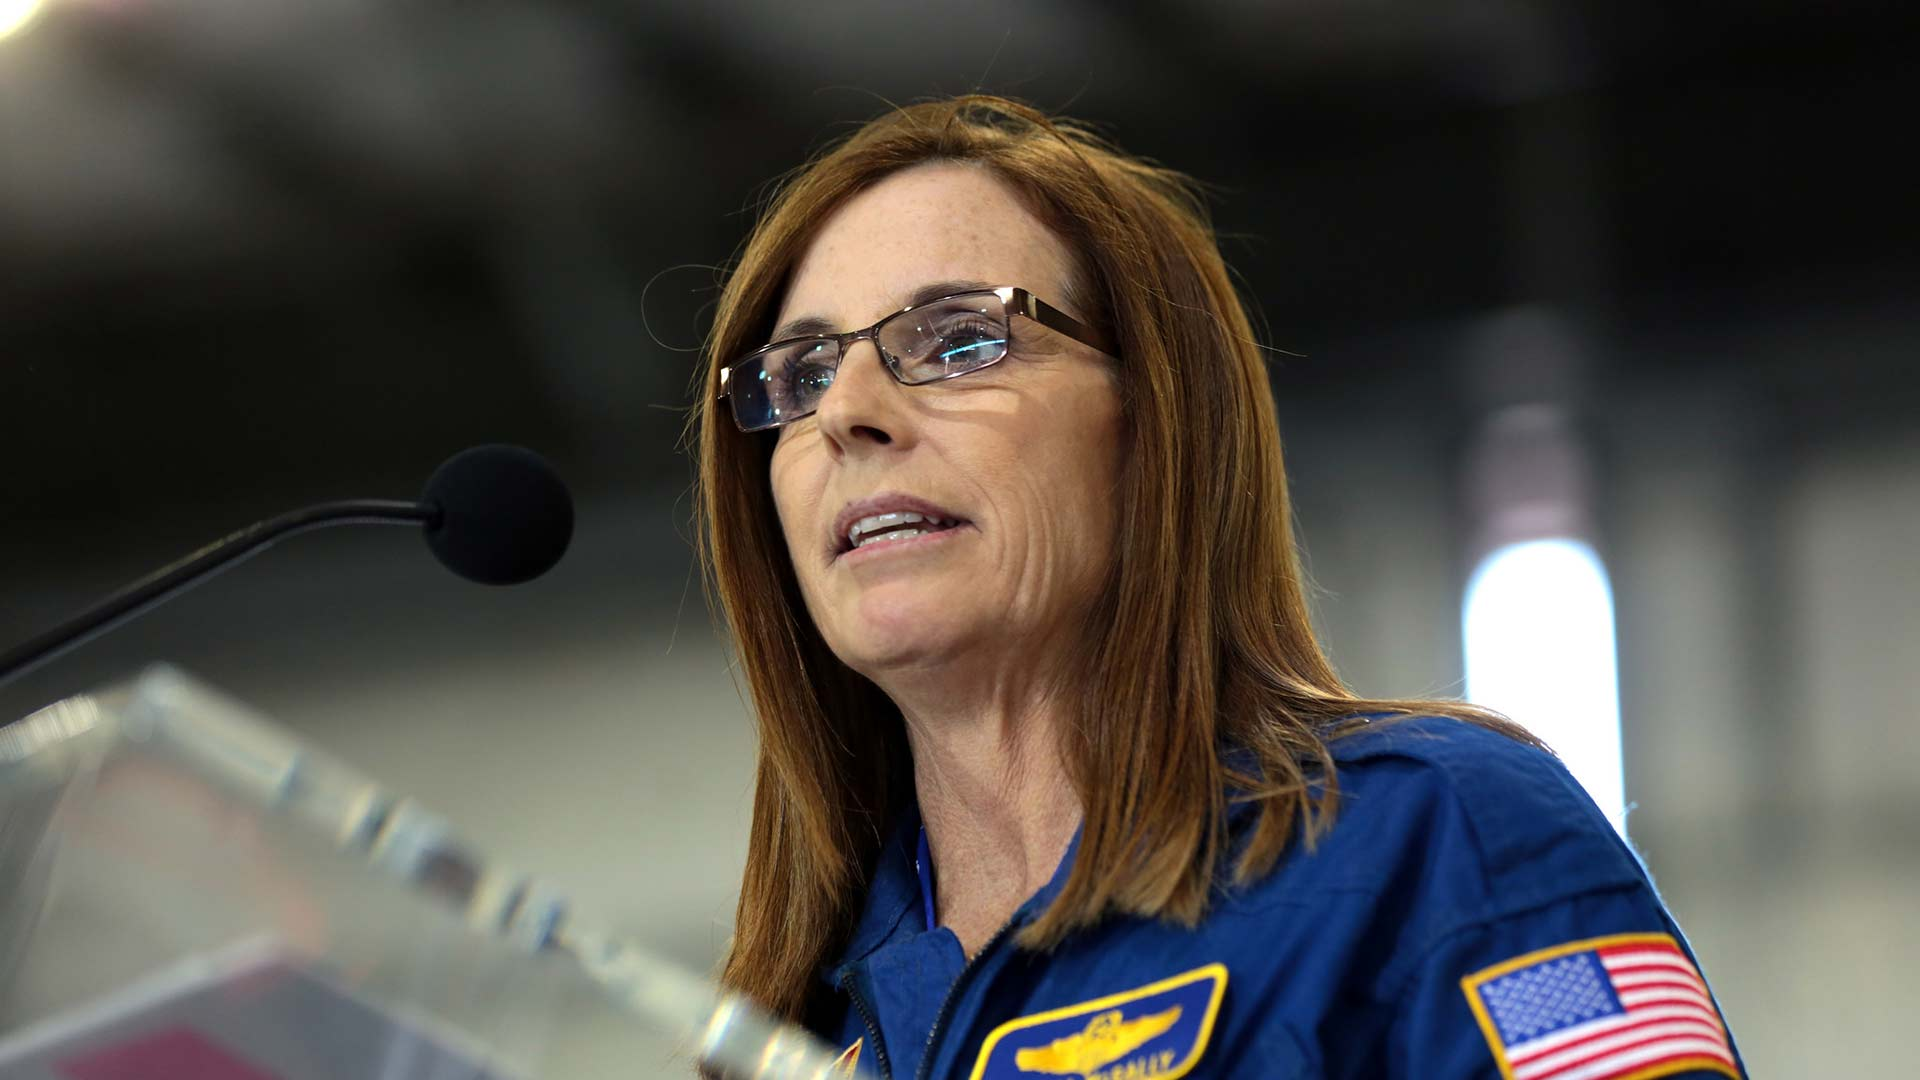 Martha McSally in Phoenix for the announcement of her candidacy for U.S. Senate, Jan. 12, 2018.